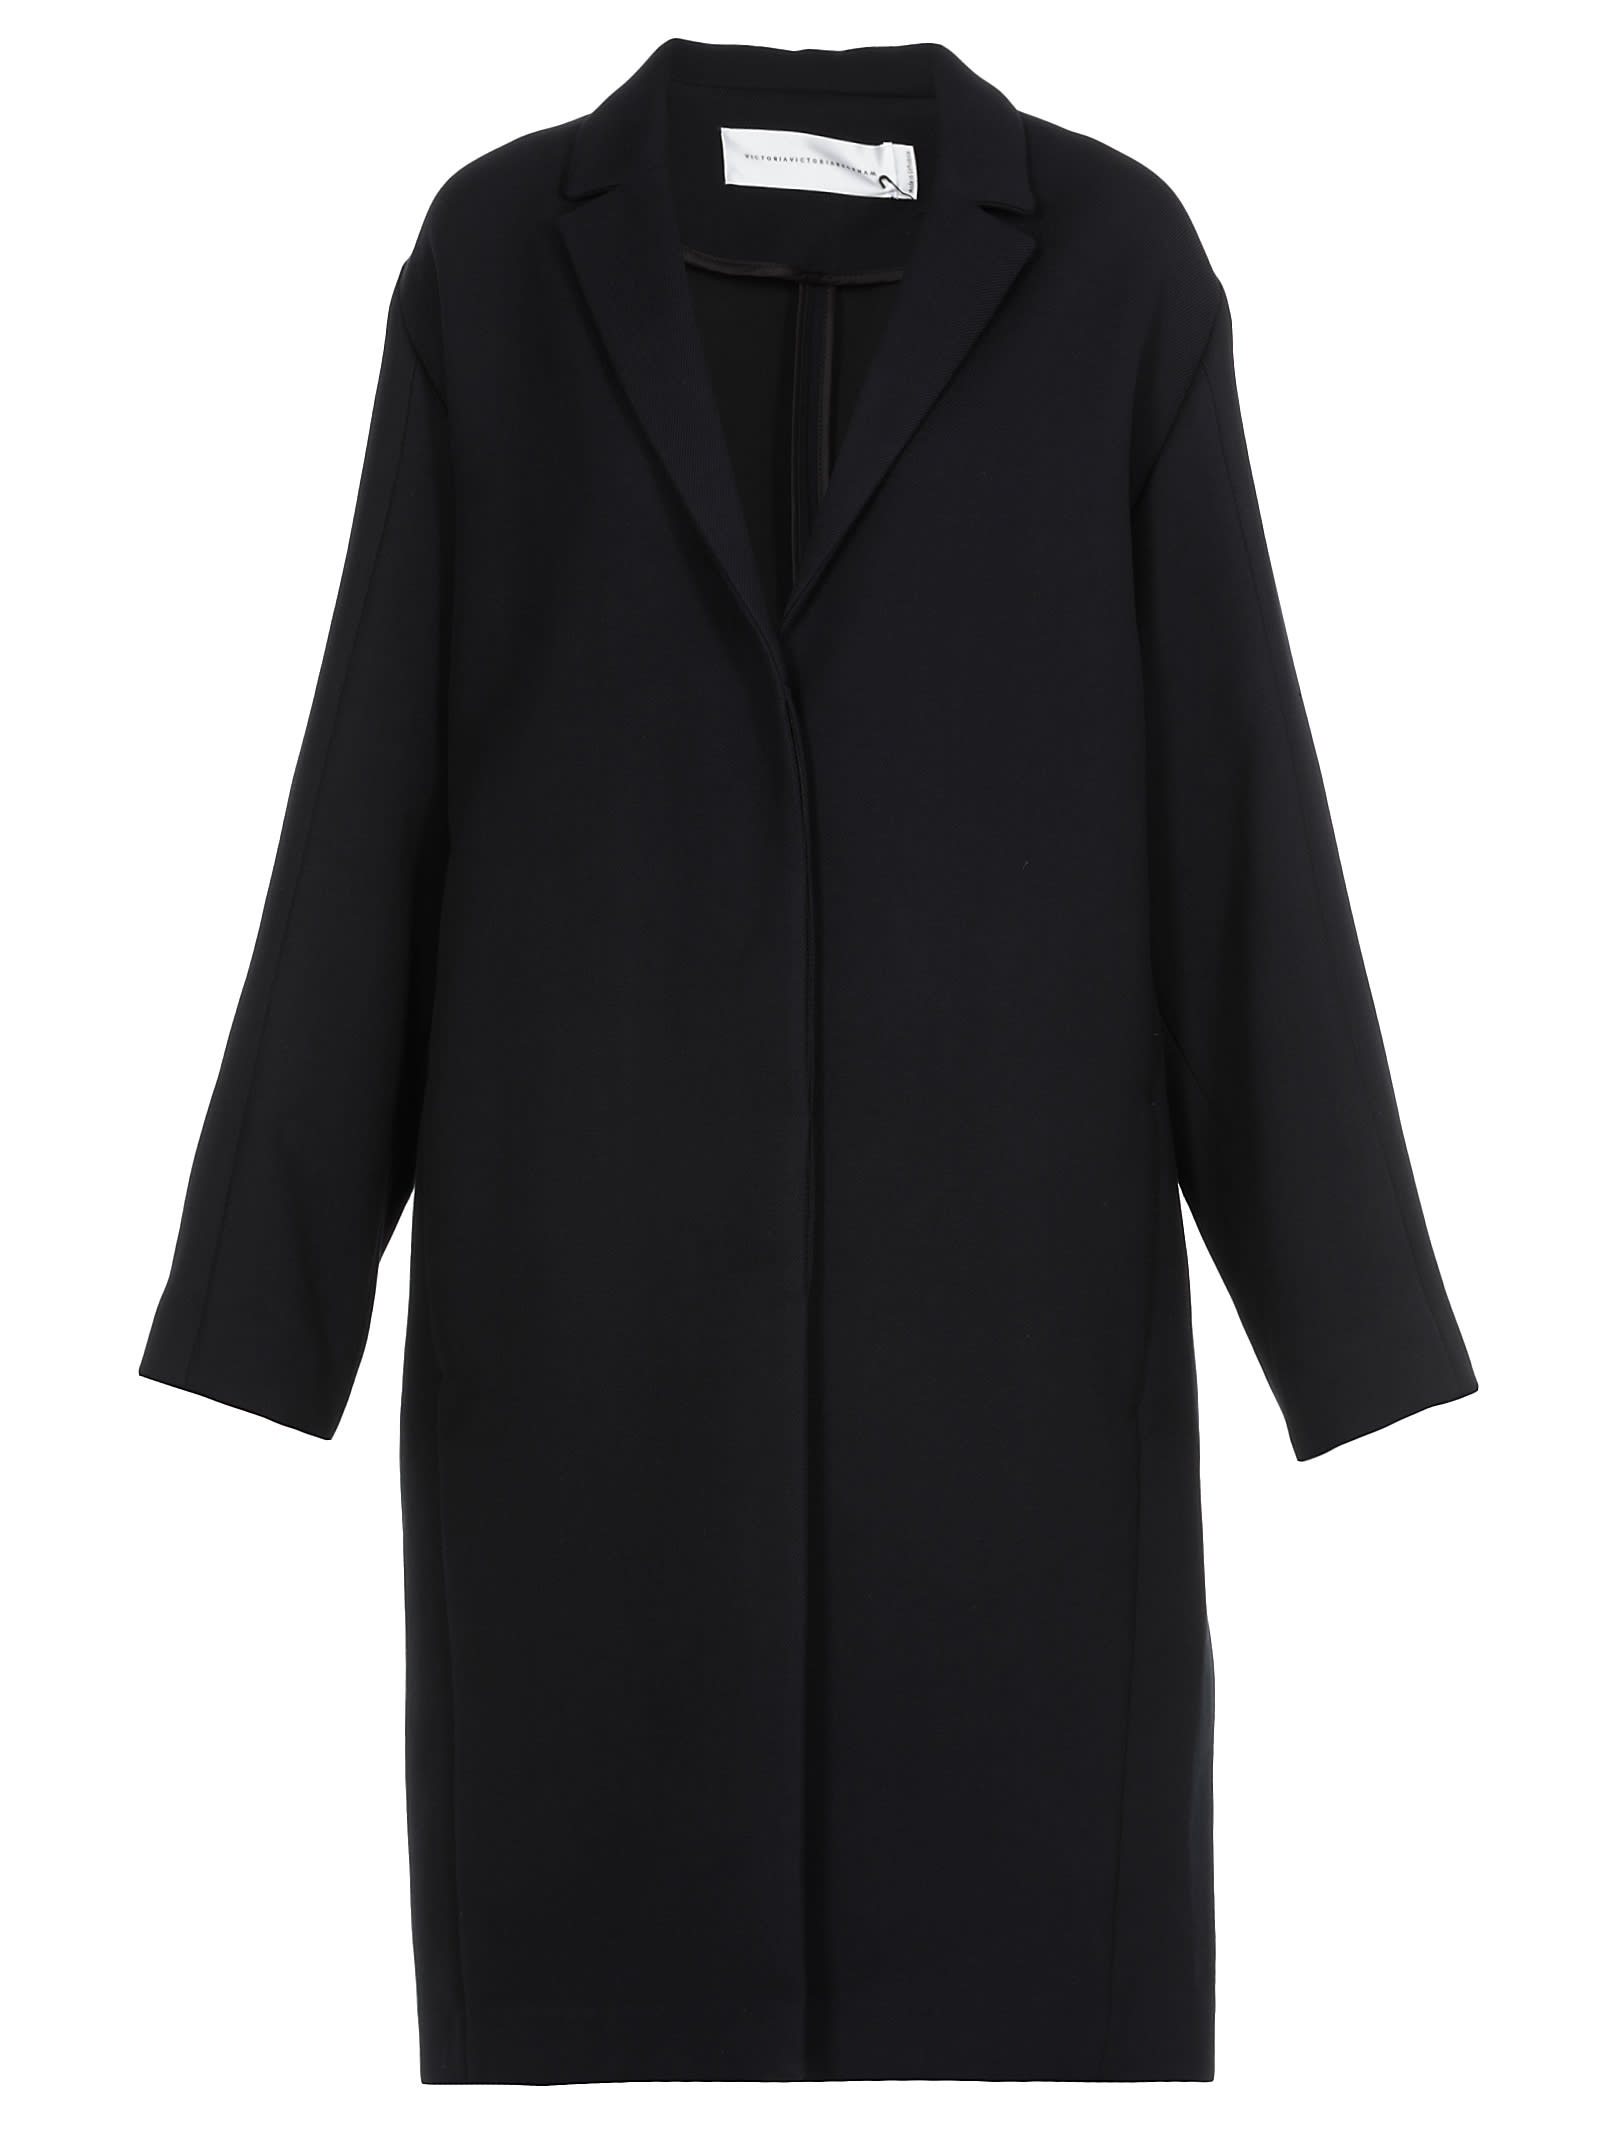 Photo of  Victoria Victoria Beckham Single-breasted Coat- shop Victoria Victoria Beckham jackets online sales